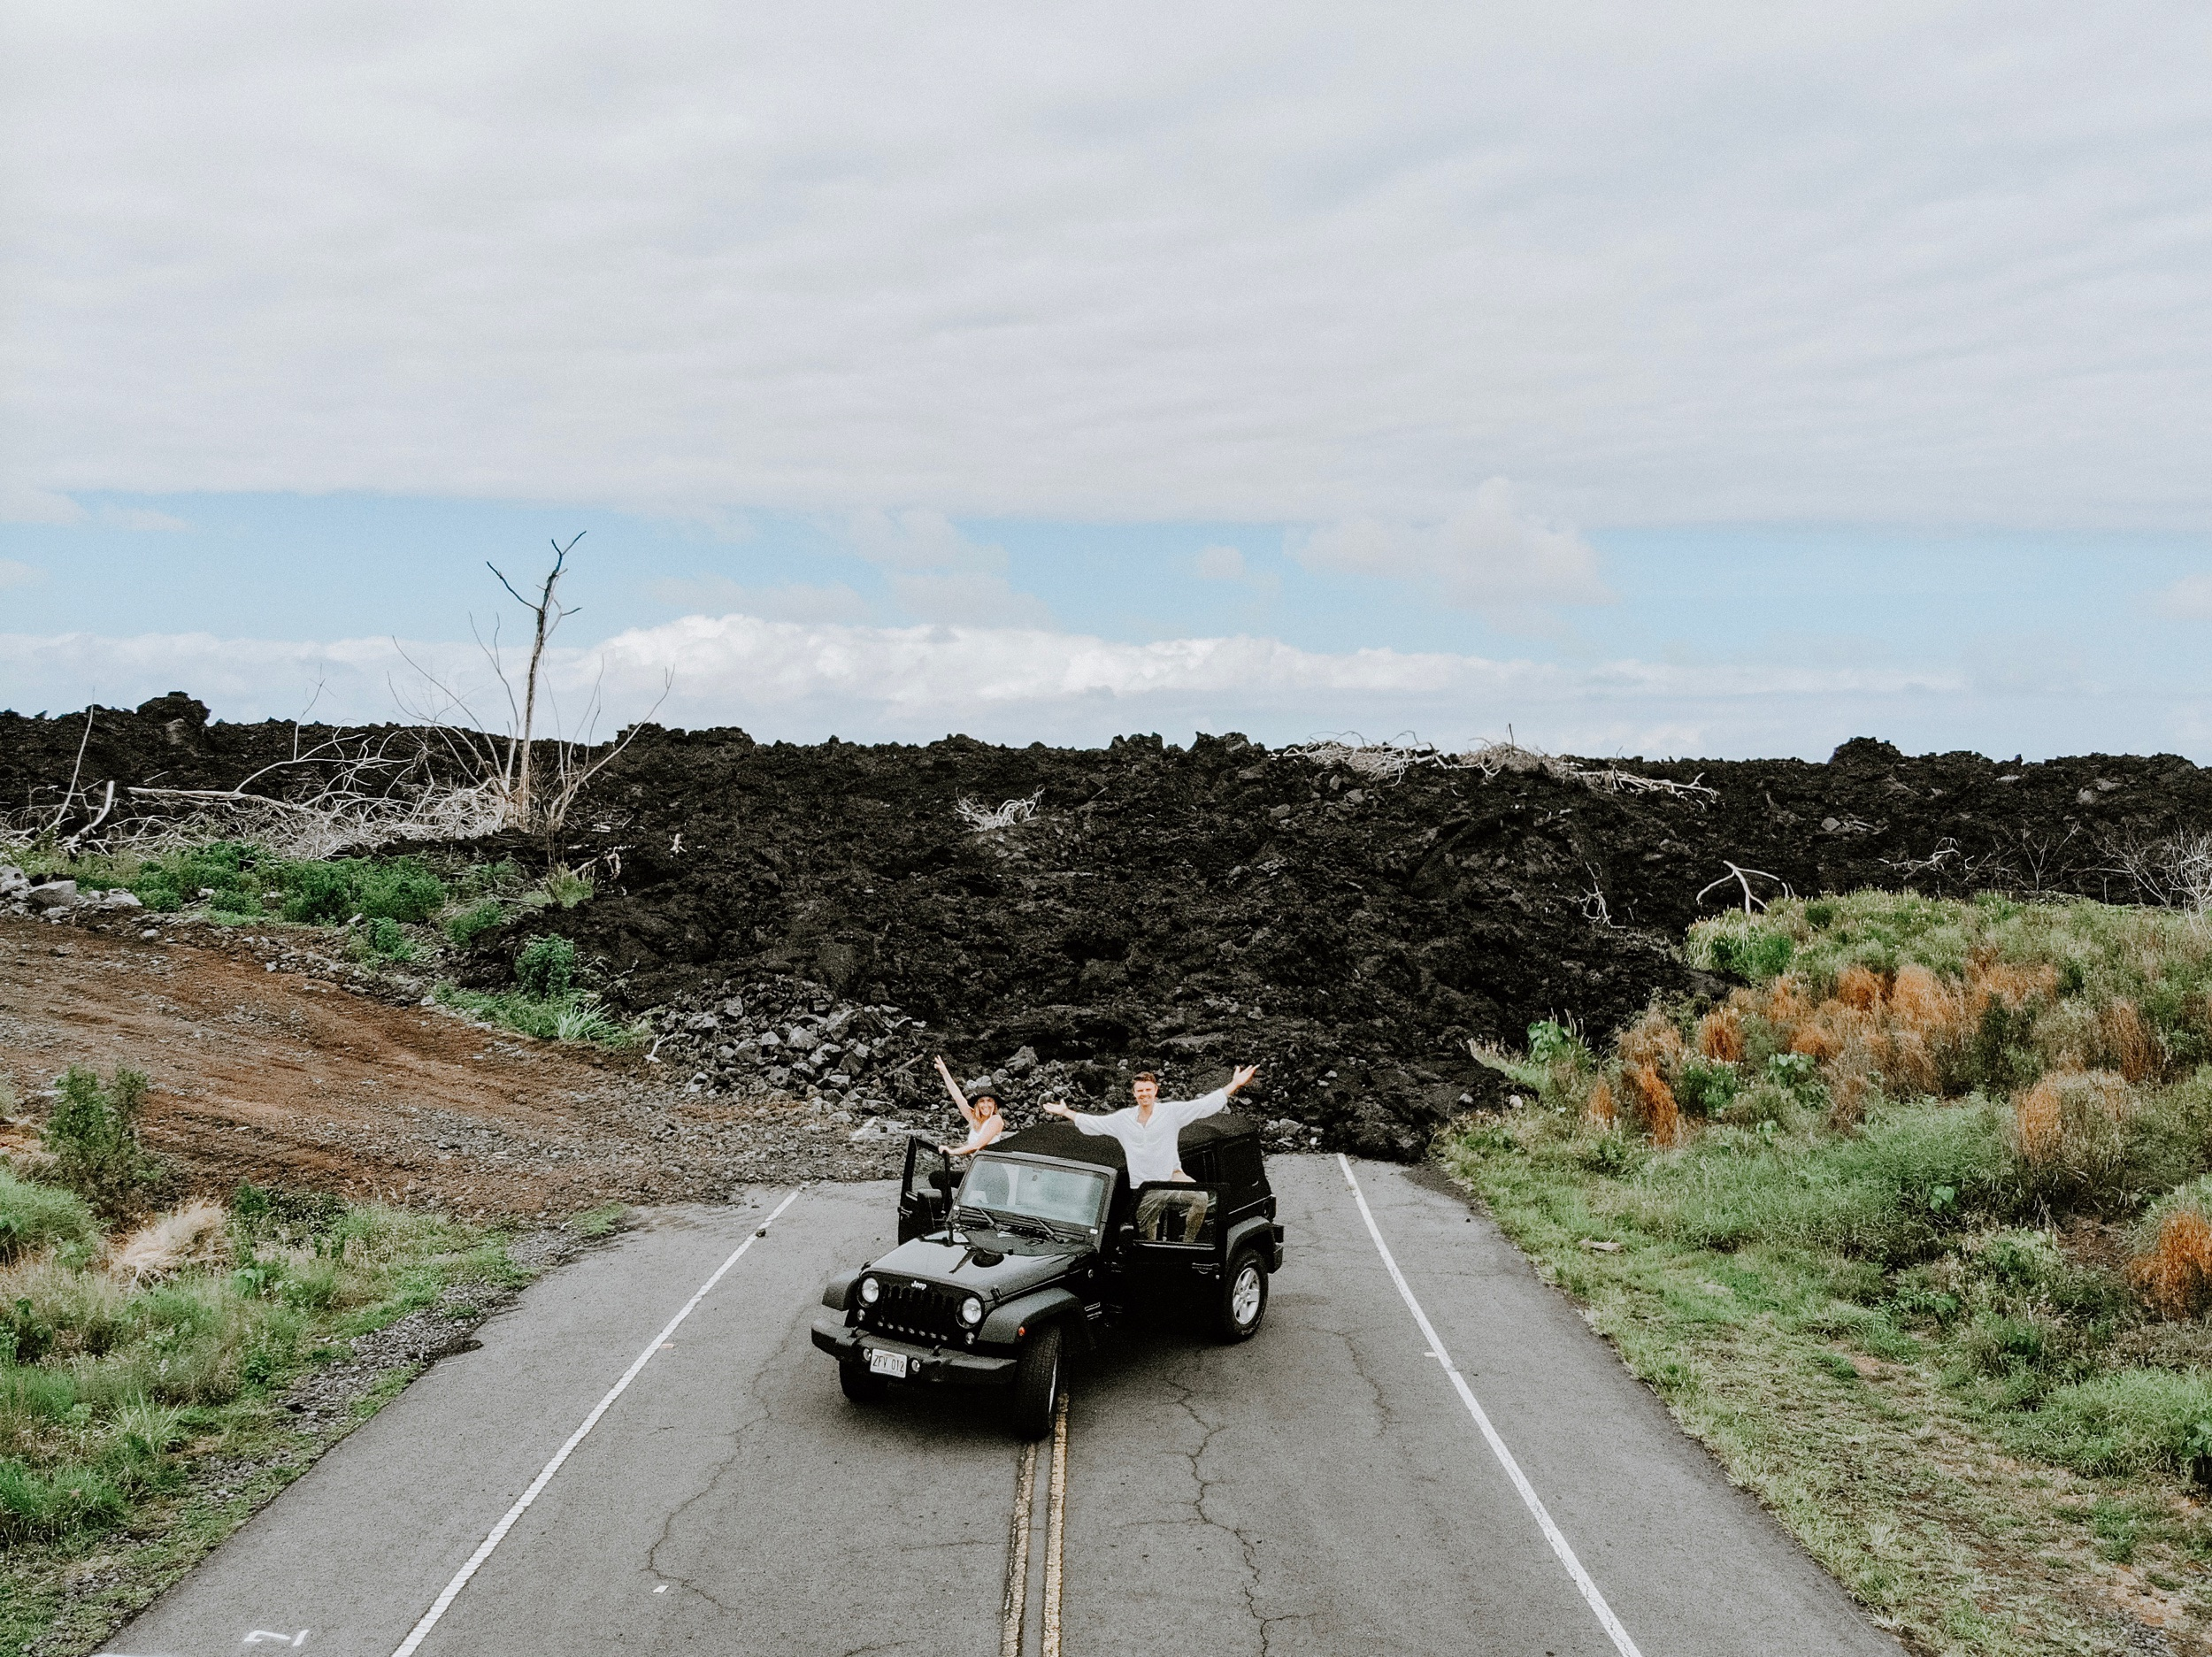 The road blocked by lava in Hilo, Hawaii